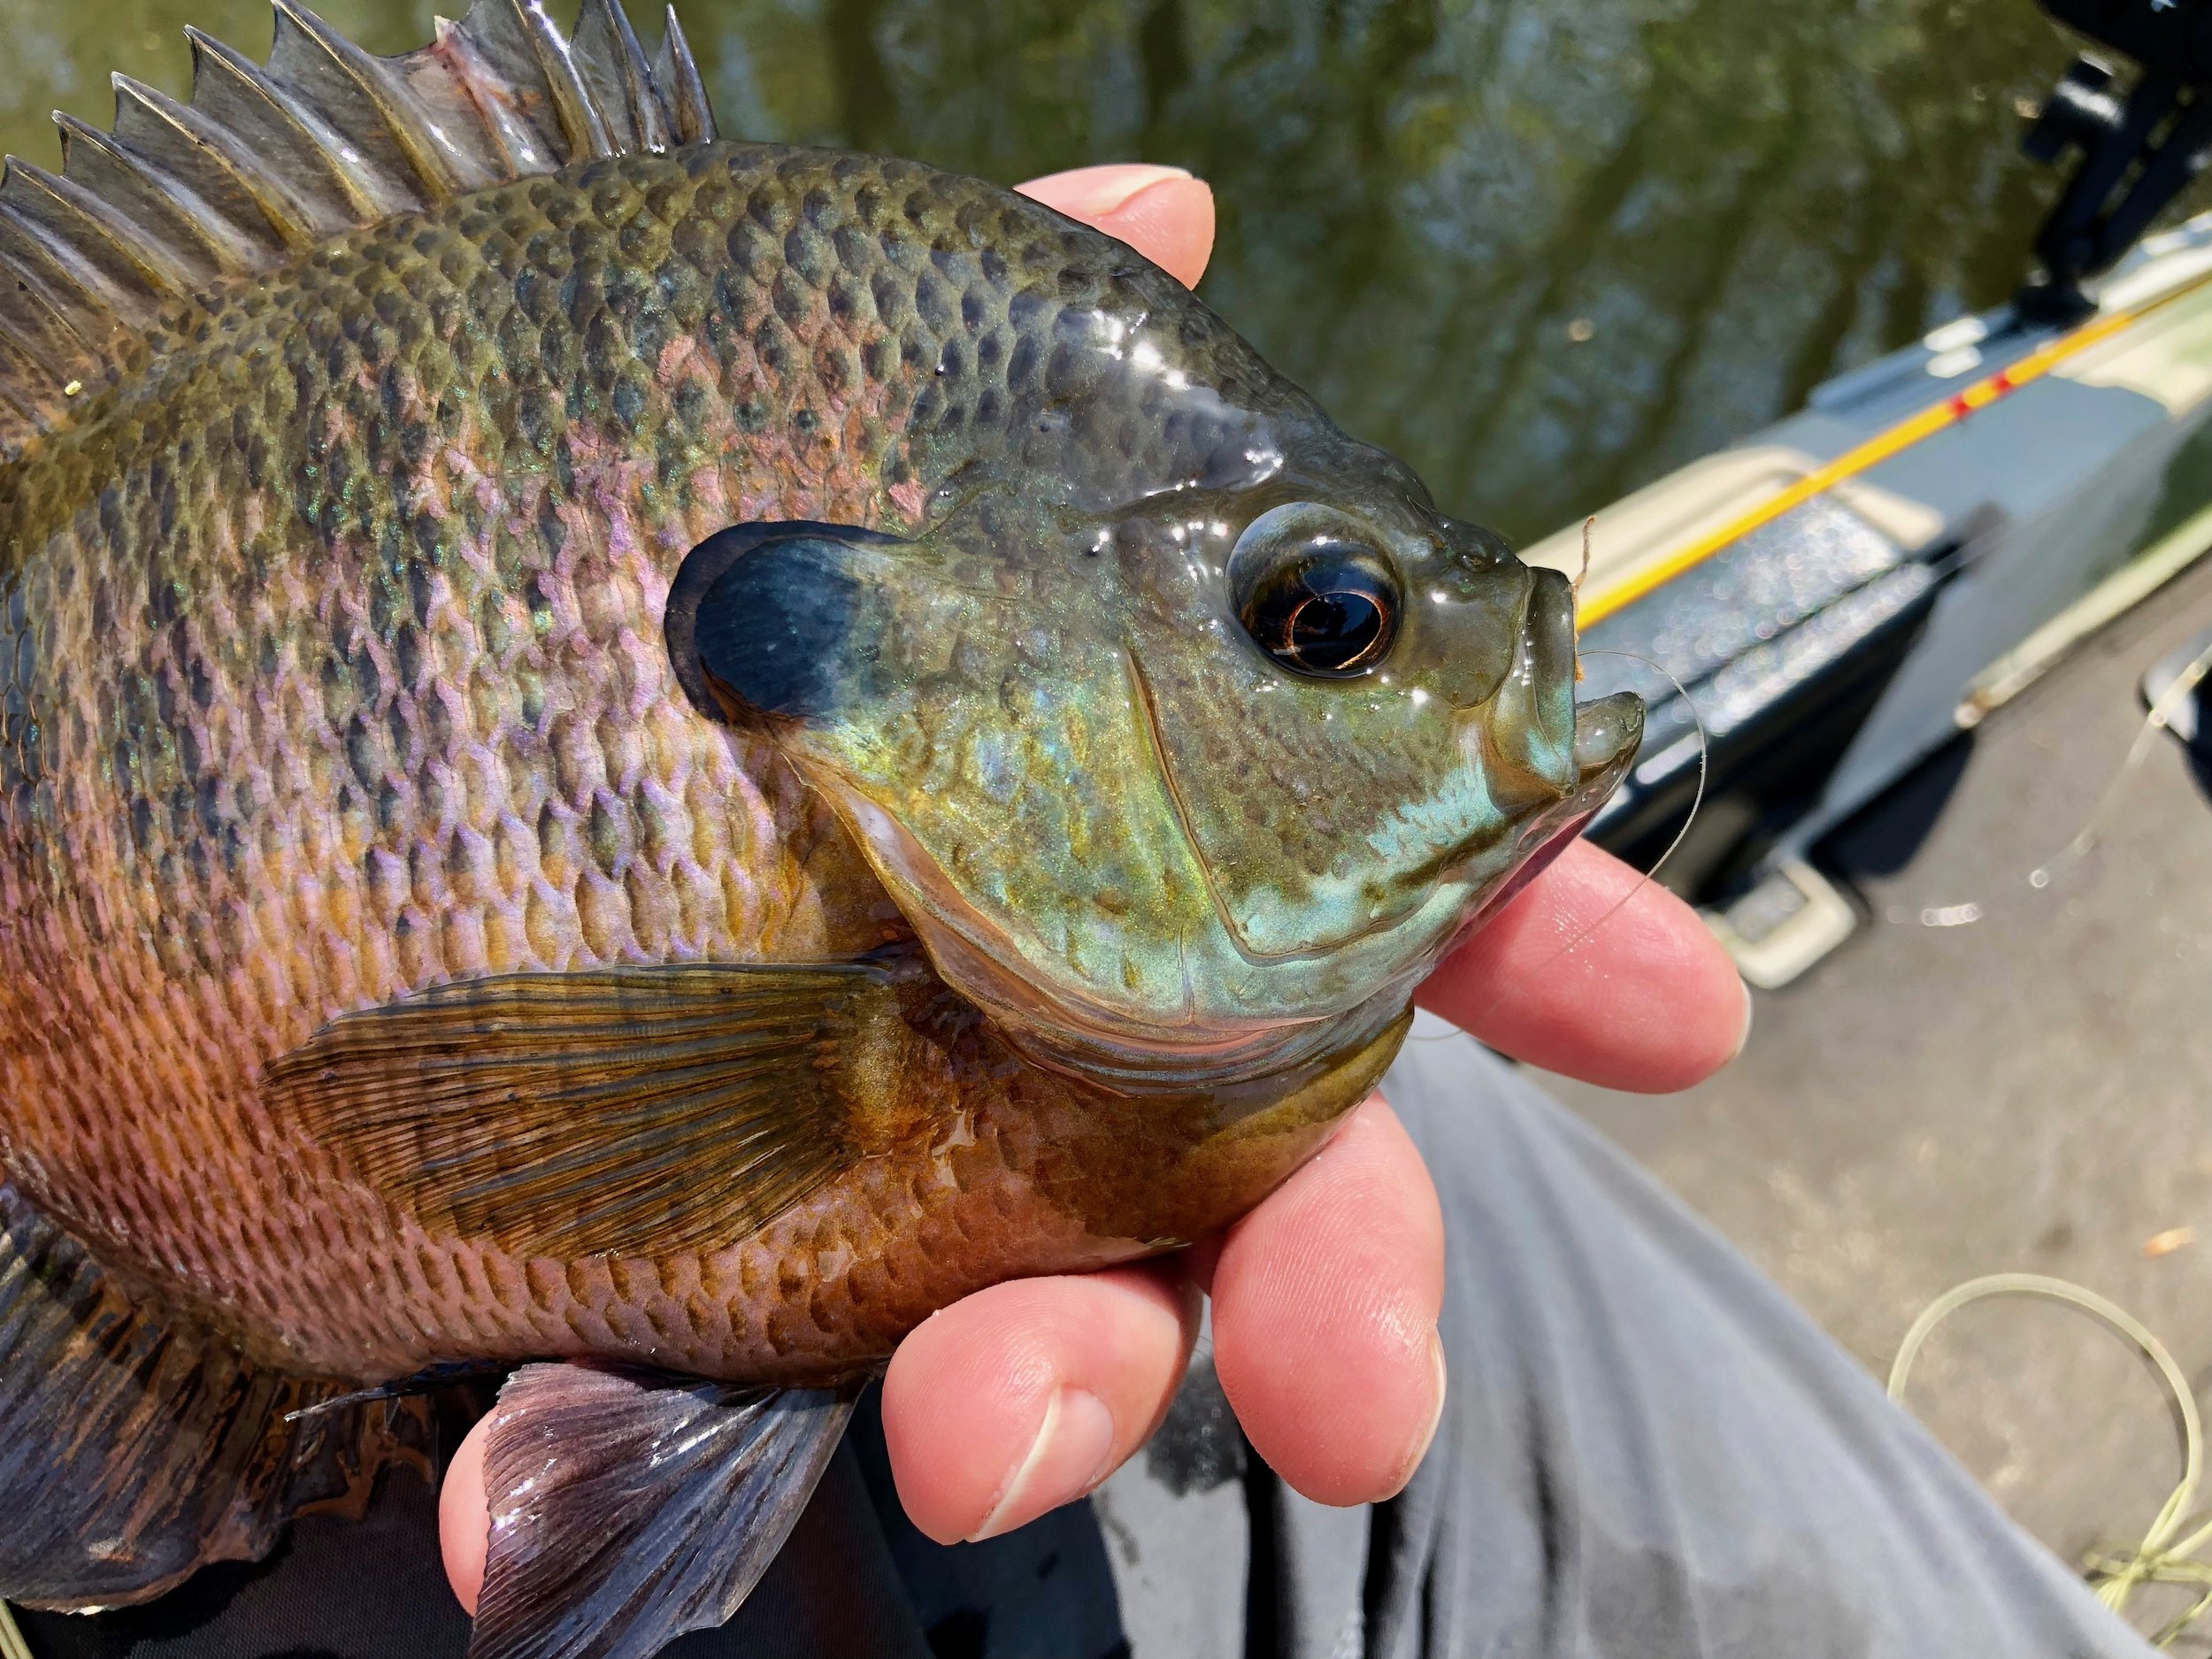 Despite their small mouths larger bluegills can take surprising large flies. This fish fully engulfed a size six streamer!